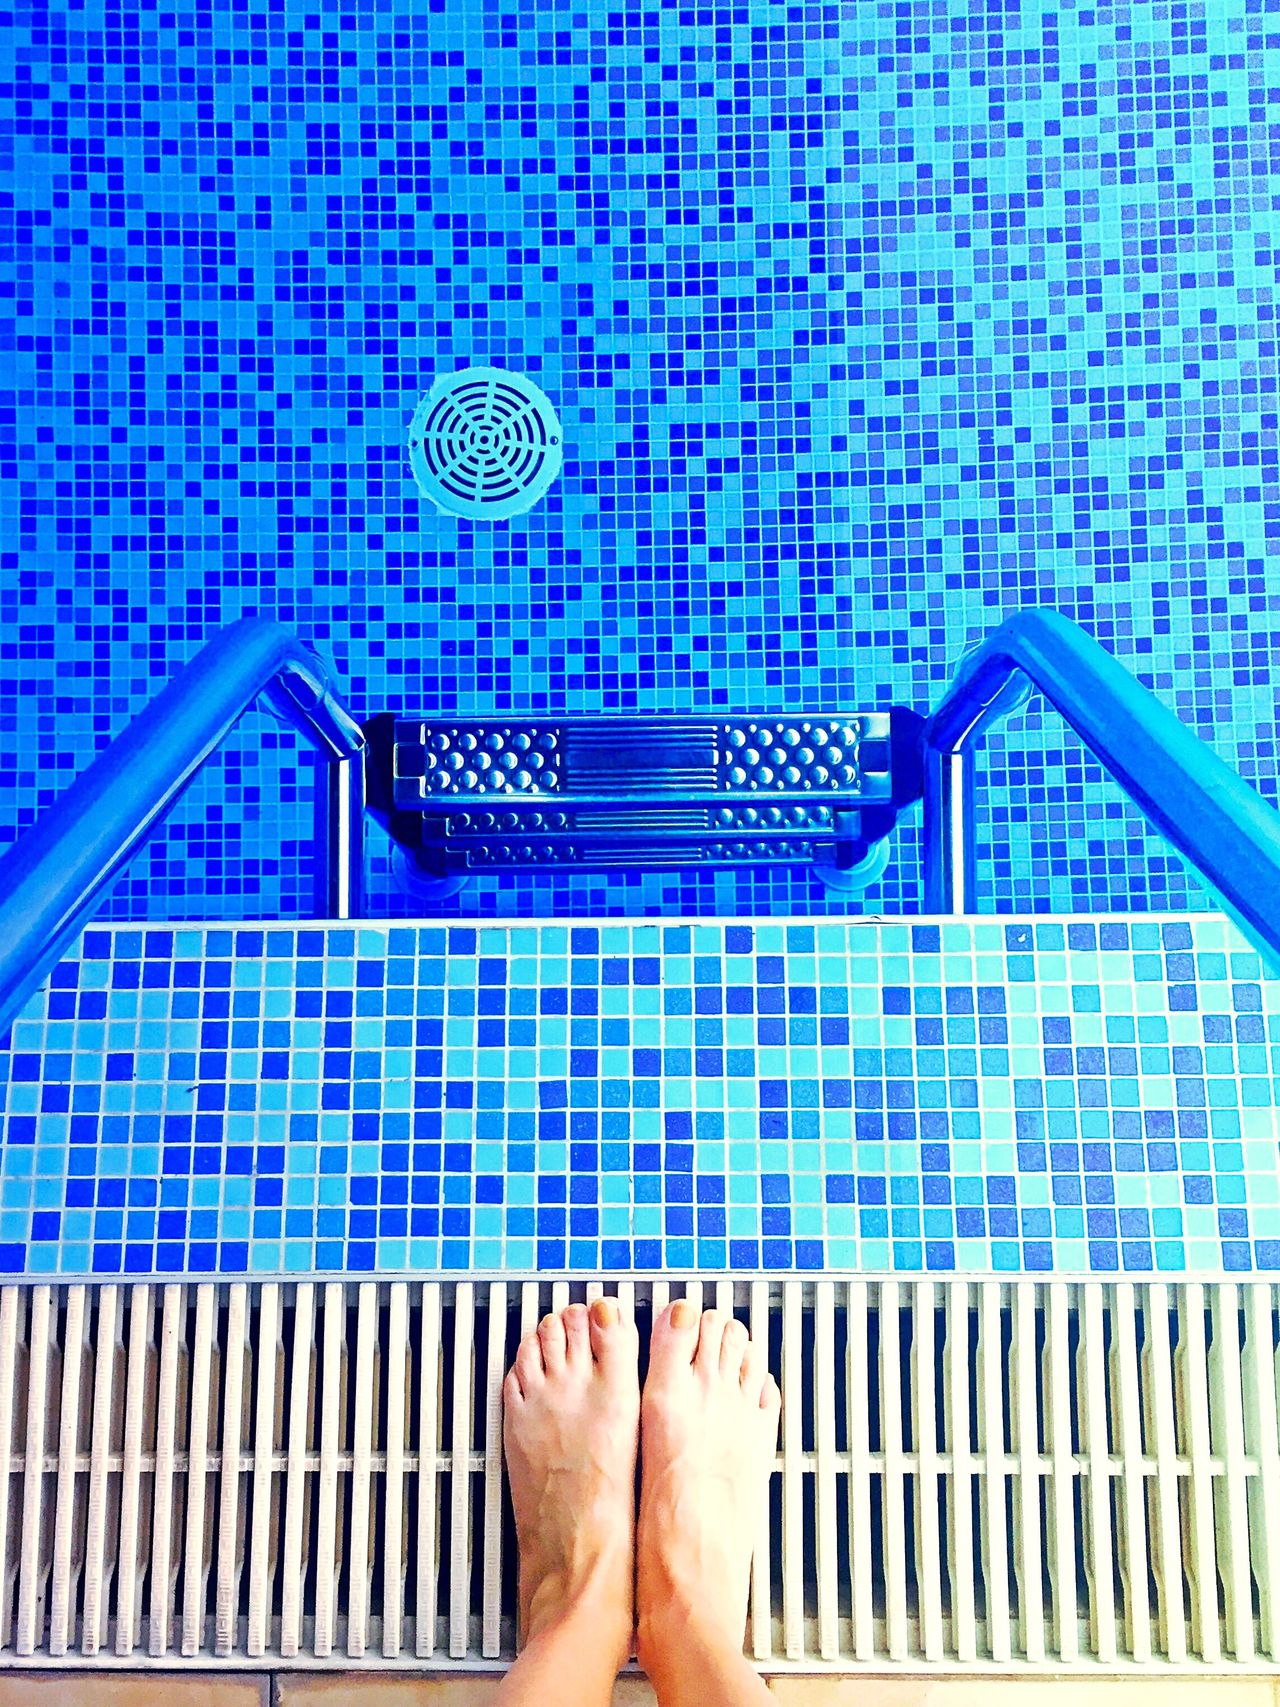 Color Palette Blue Pool Time Abstract Wet Pooltime Swimming Swimming Time Water Swimming Pool Swimmingpool Perspective Looking Down Blue Tiles Color Palette Pool Steps Pool Exercise Swim Holiday Summer Feet Bare Feet The Color Of Sport Dramatic Angles